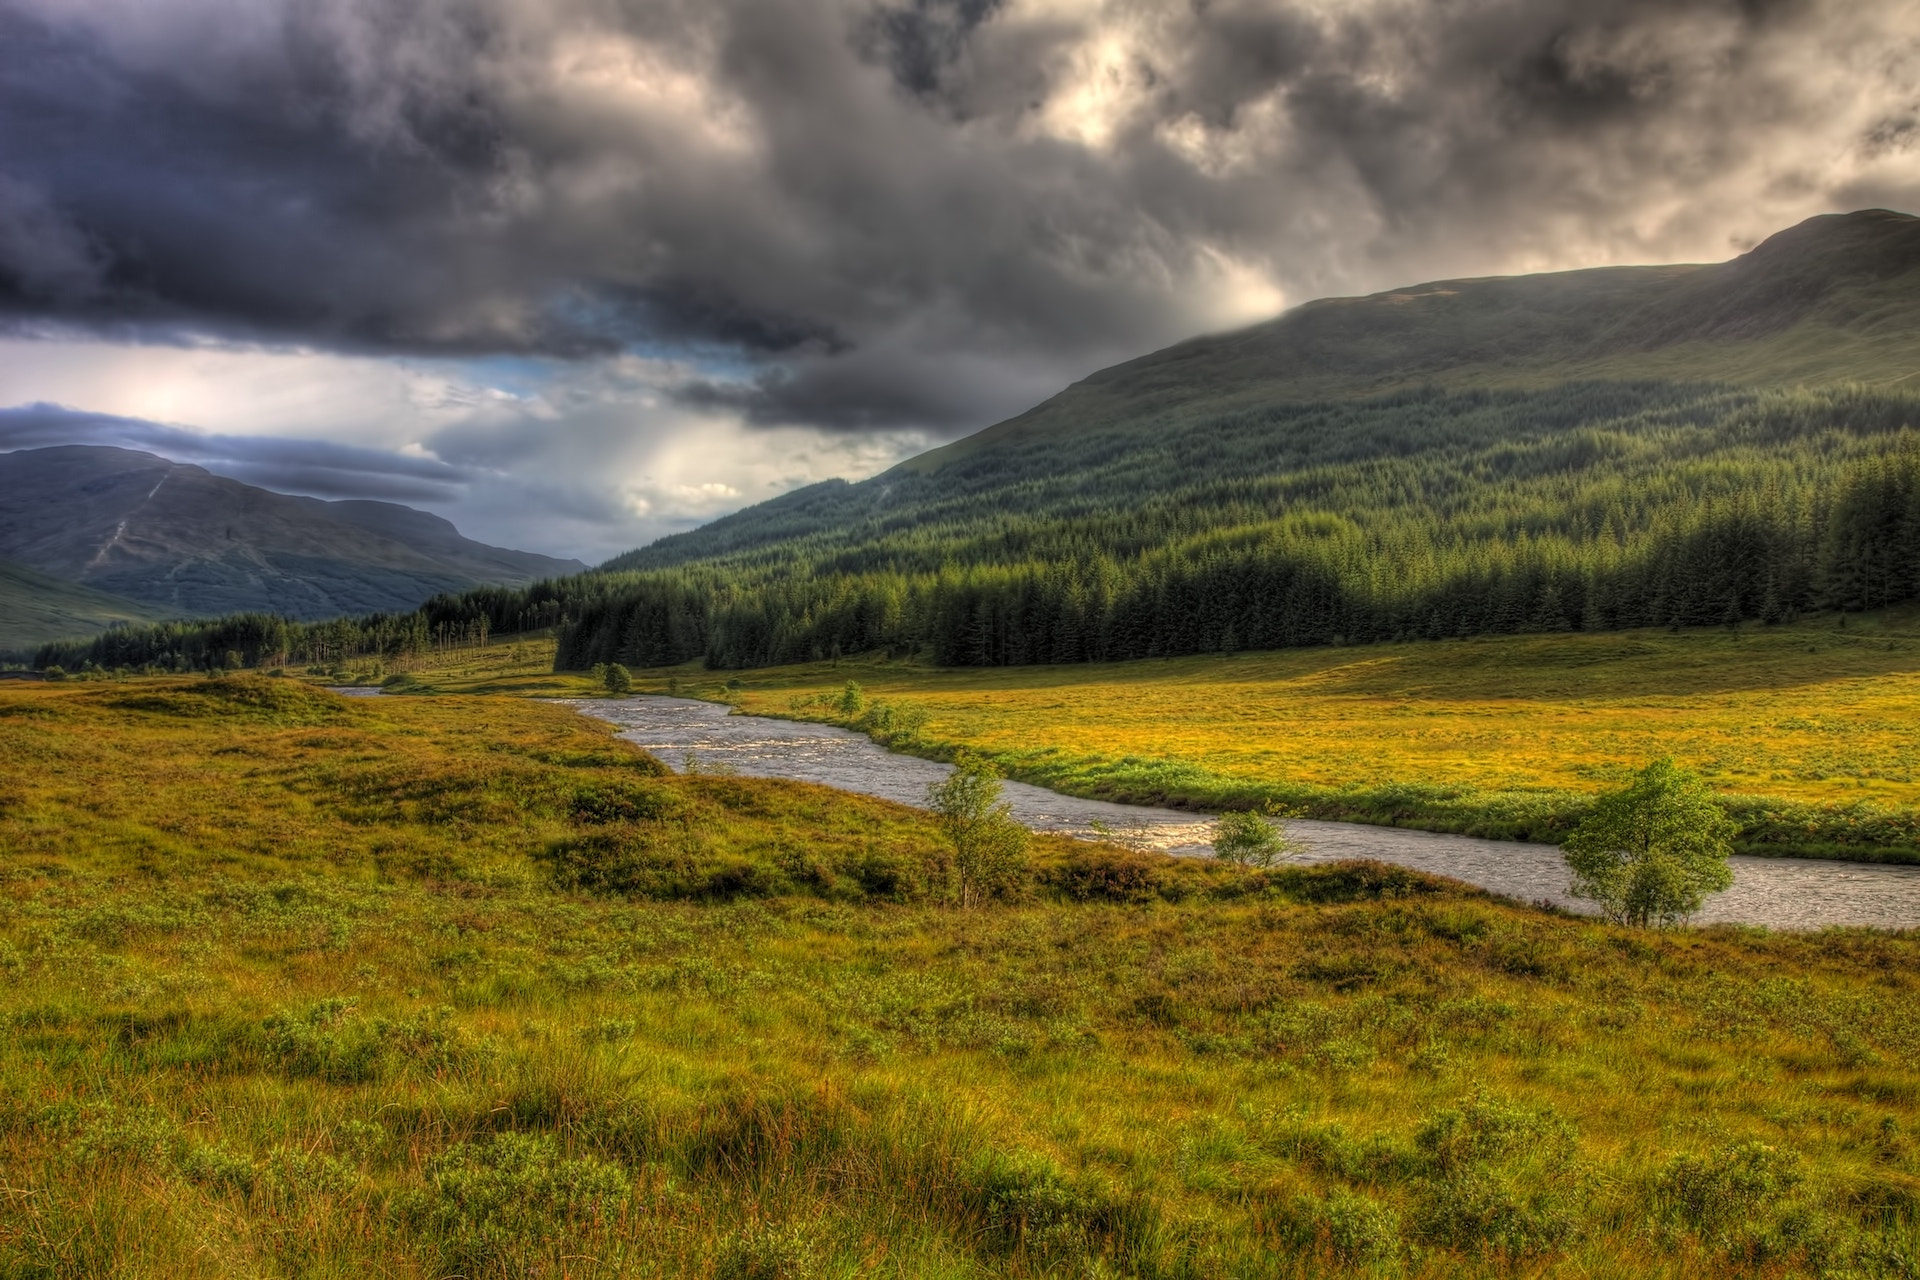 Photograph A River Runs Through It by Ron Wanderer on 500px